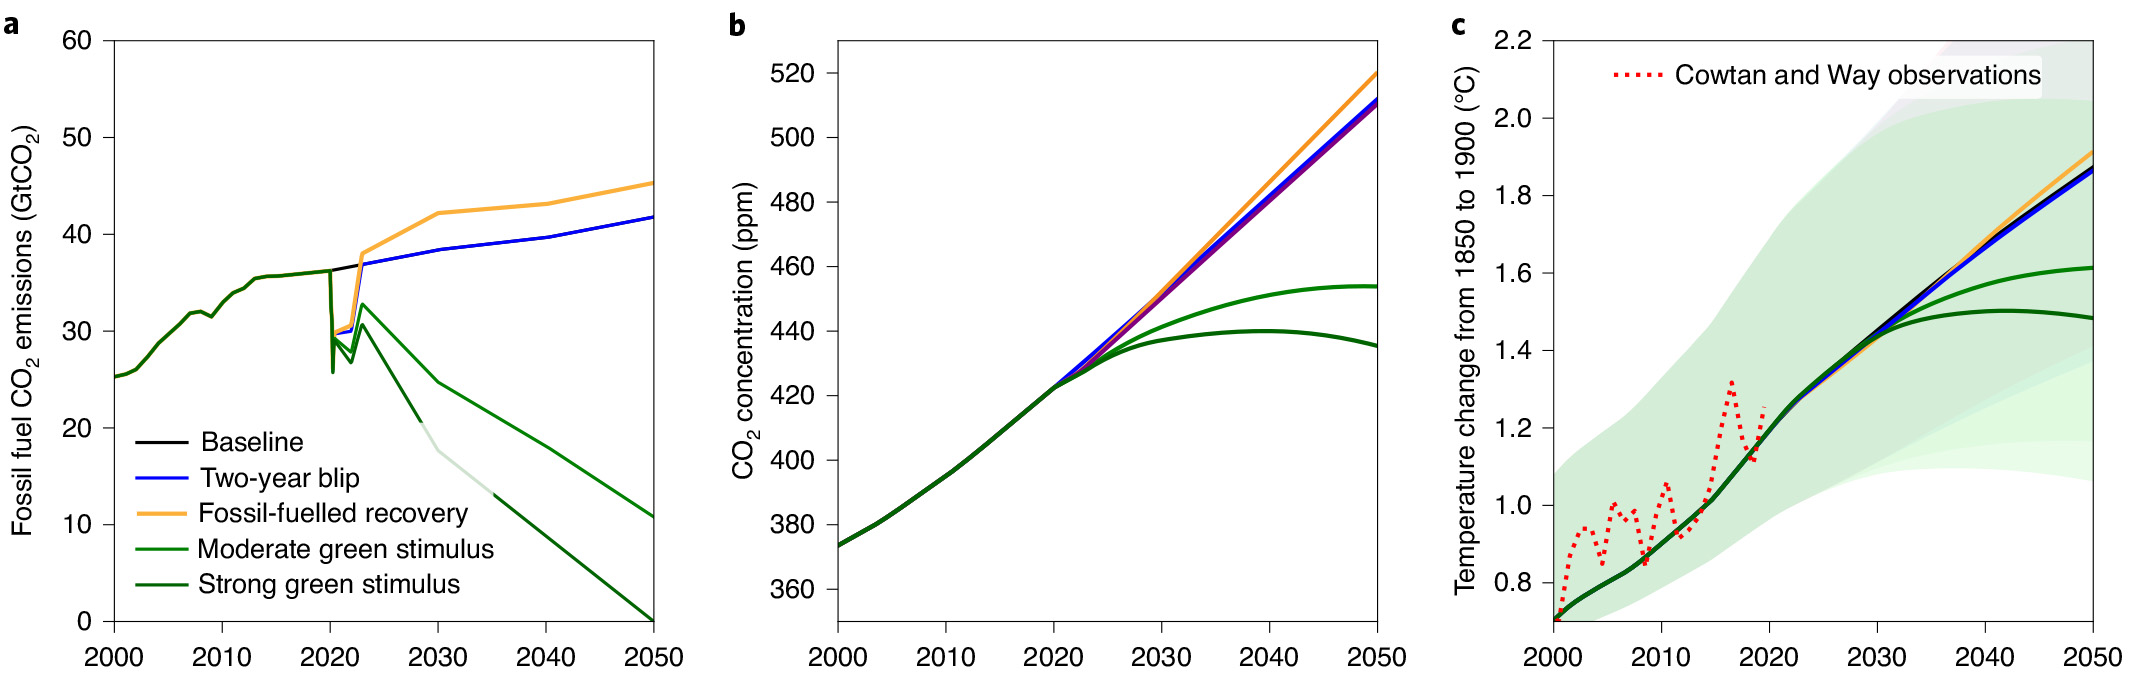 Different emissions scenarios for post-pandemic economic recovery make a big difference in the long term.